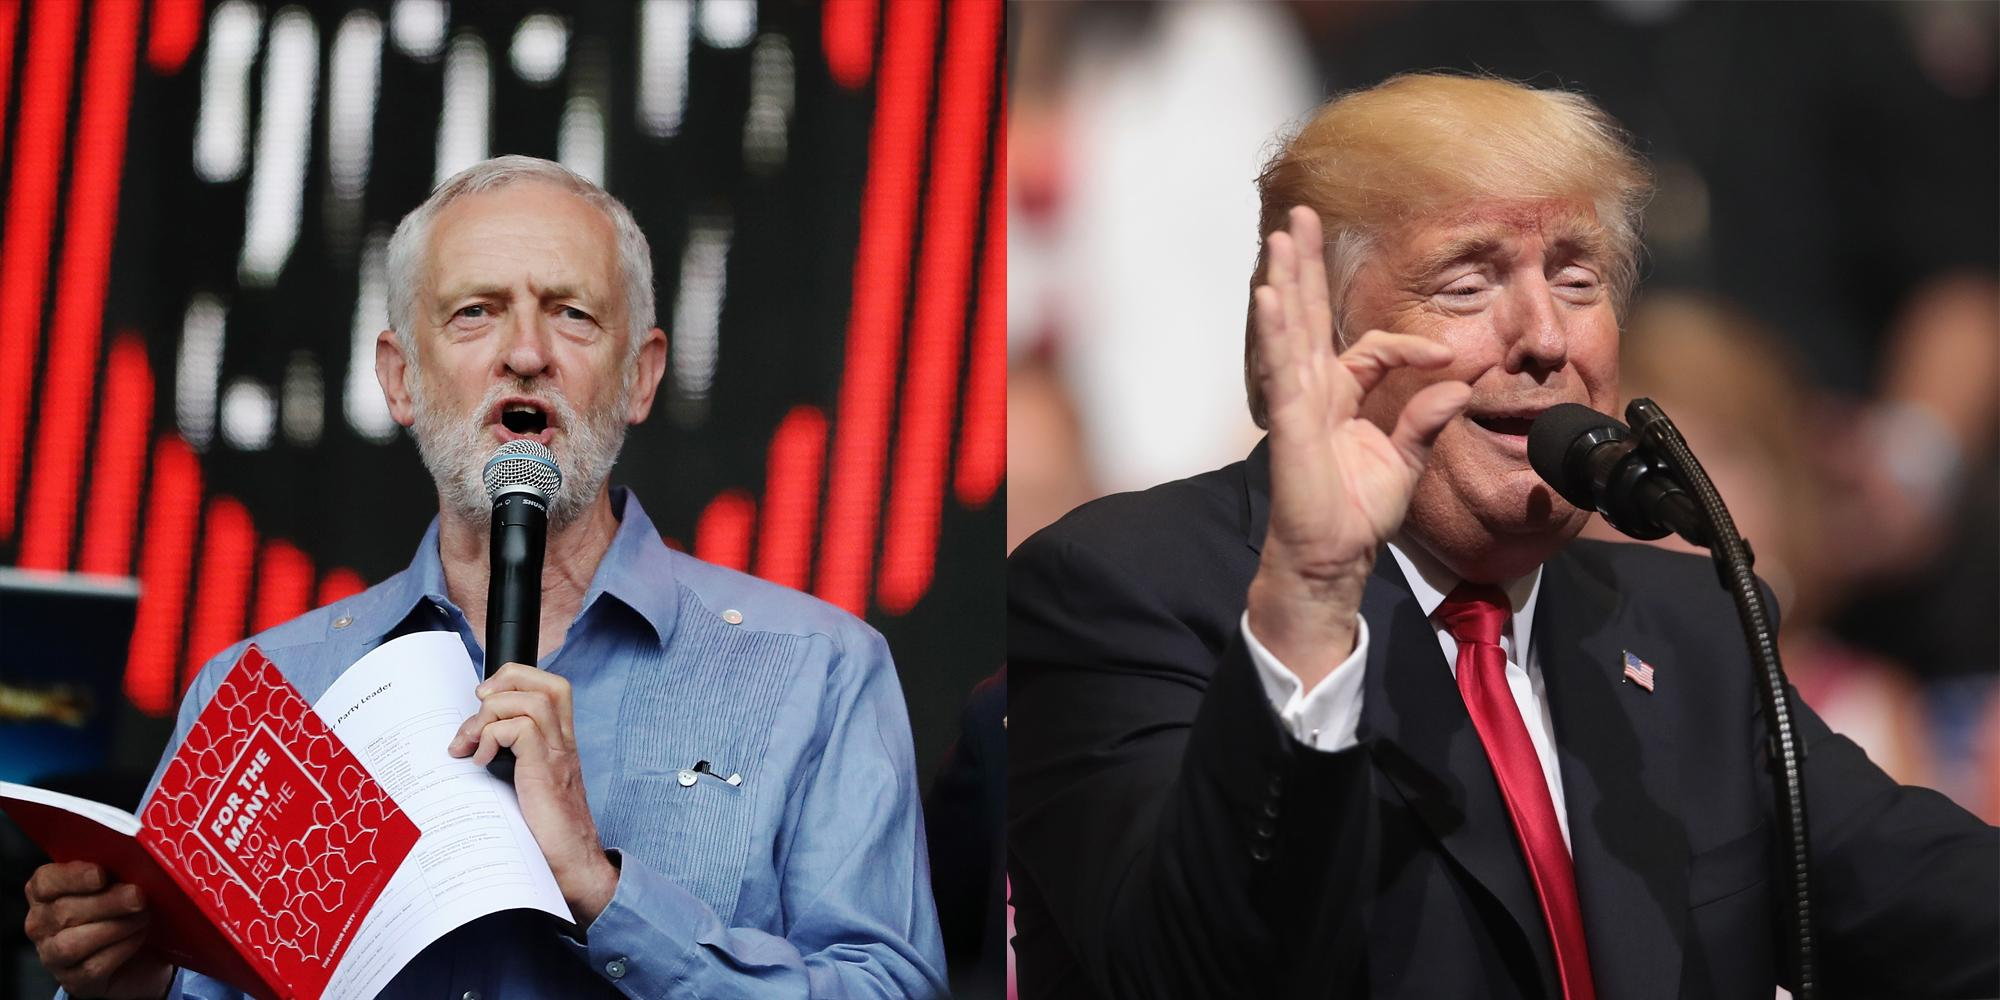 Jeremy Corbyn just destroyed Donald Trump in front of tens of thousands at Glastonbury